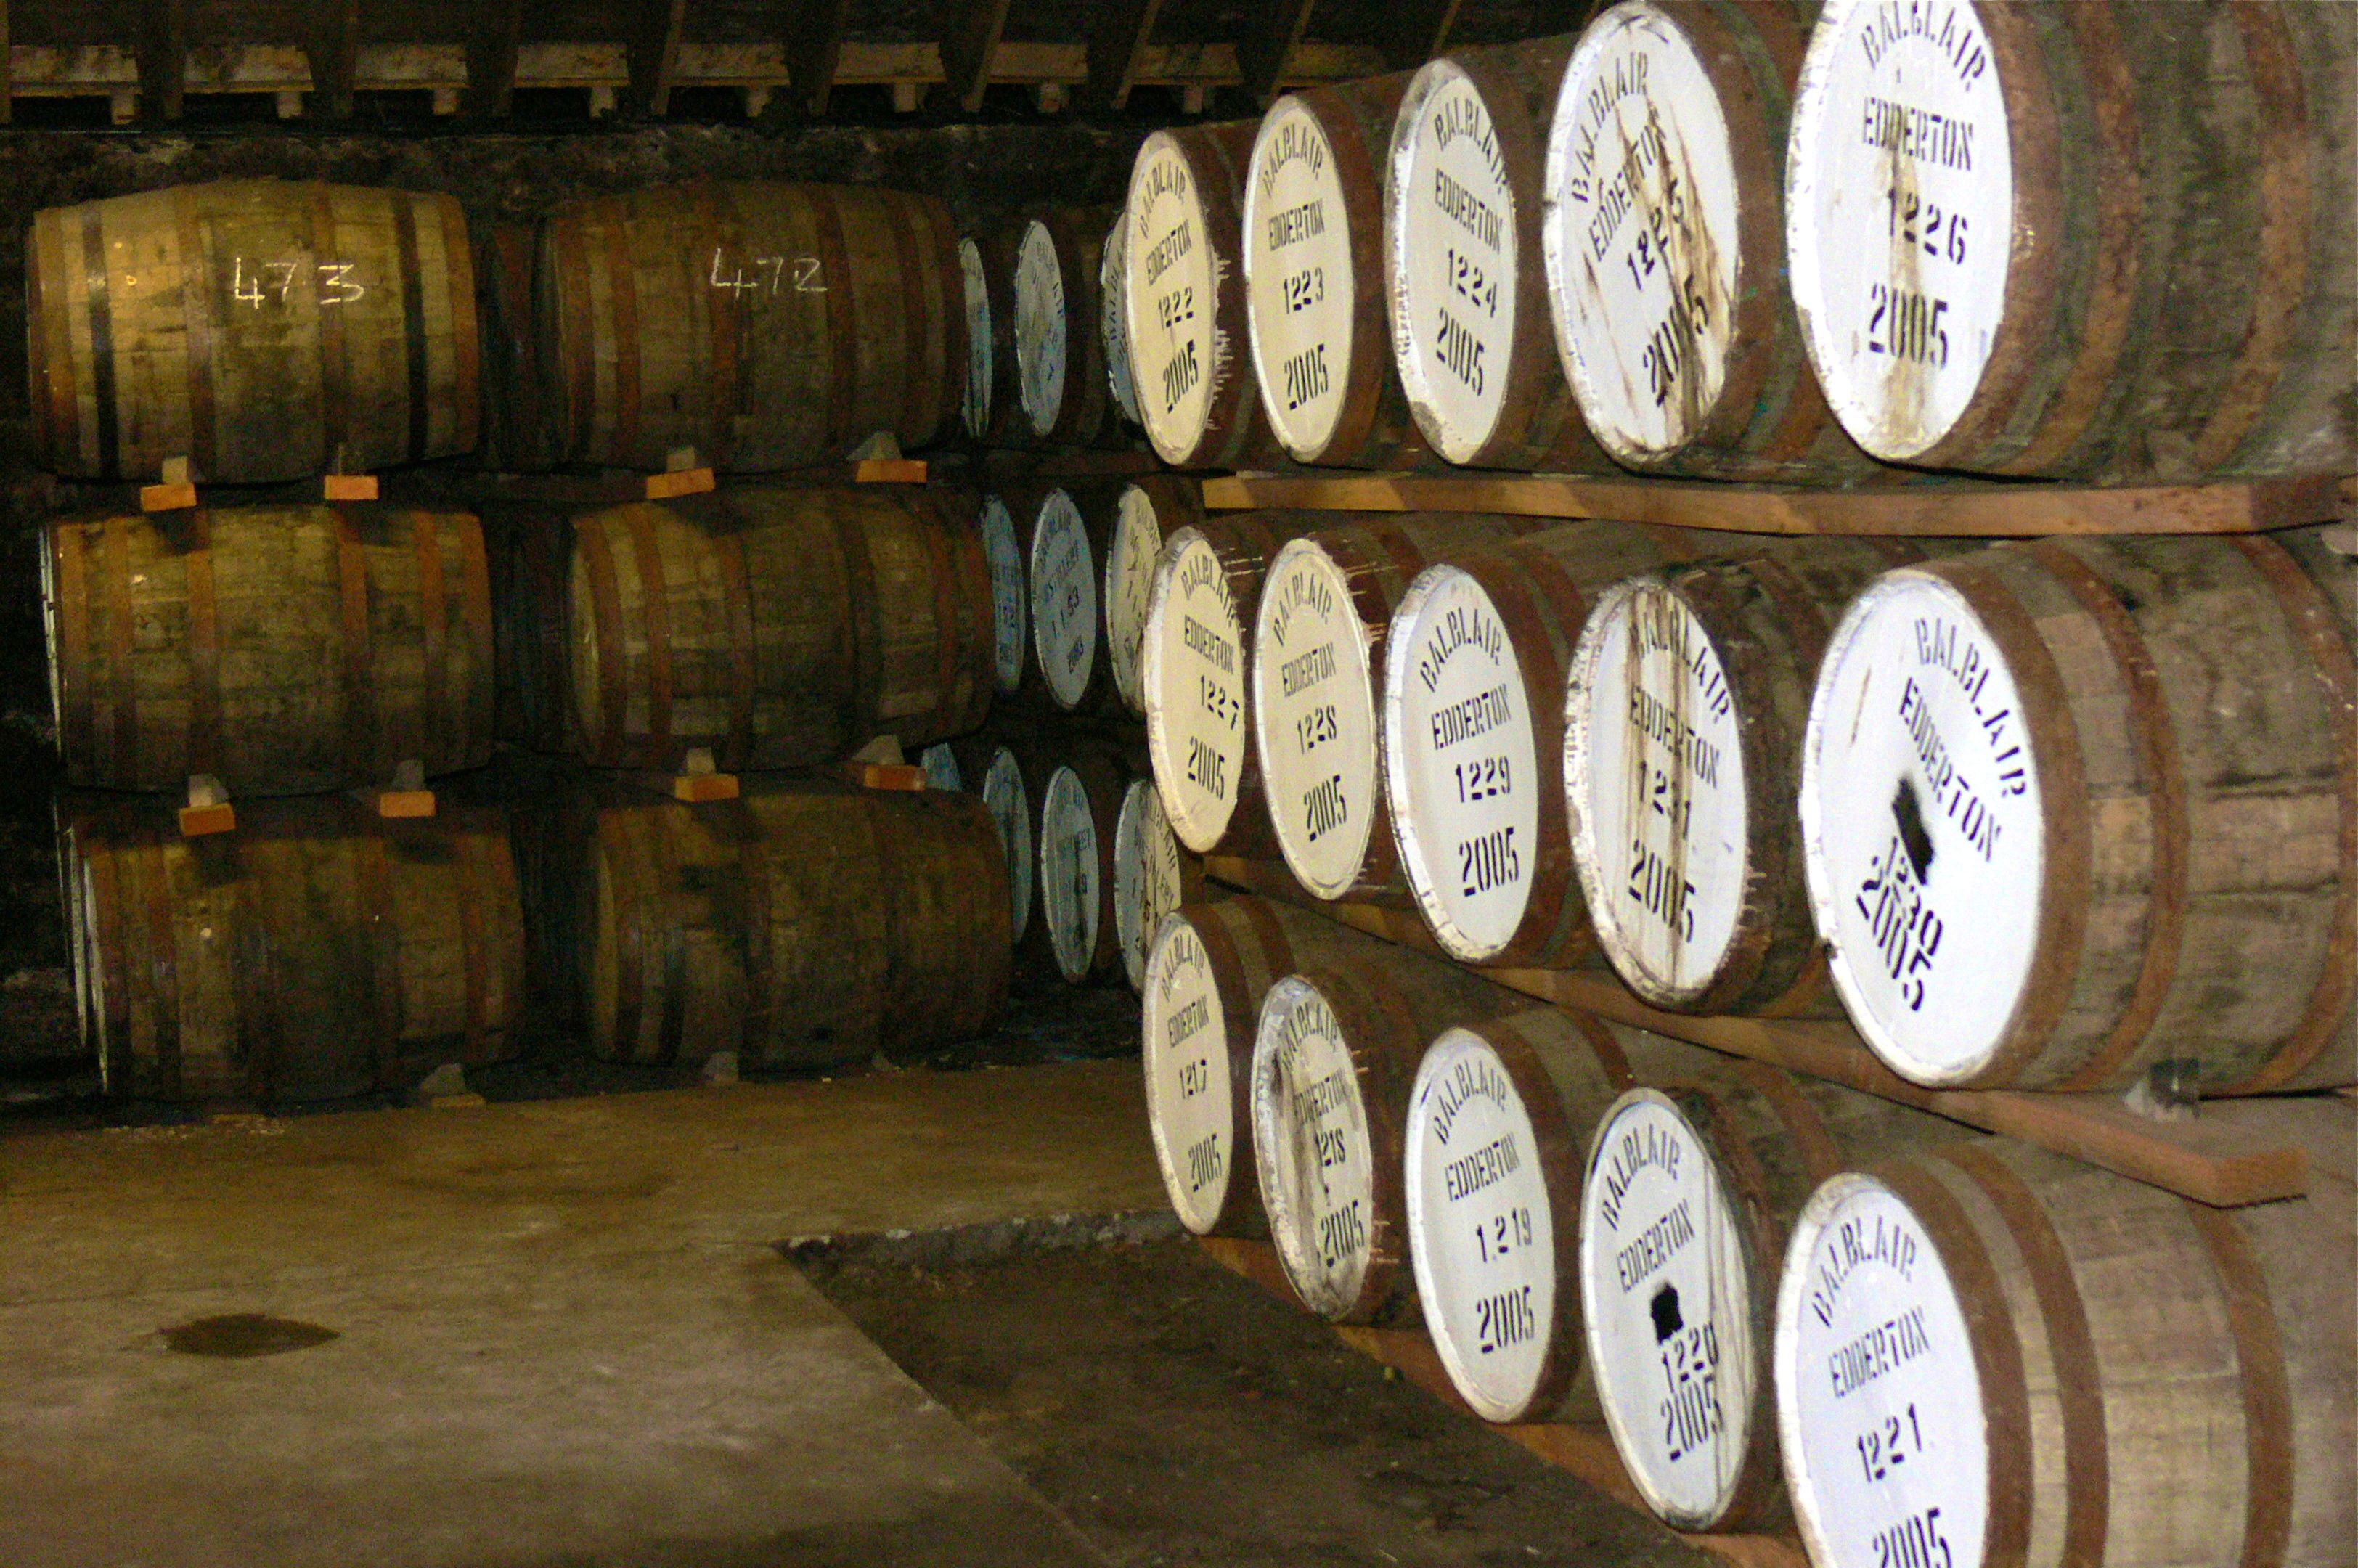 Casks at Balblair